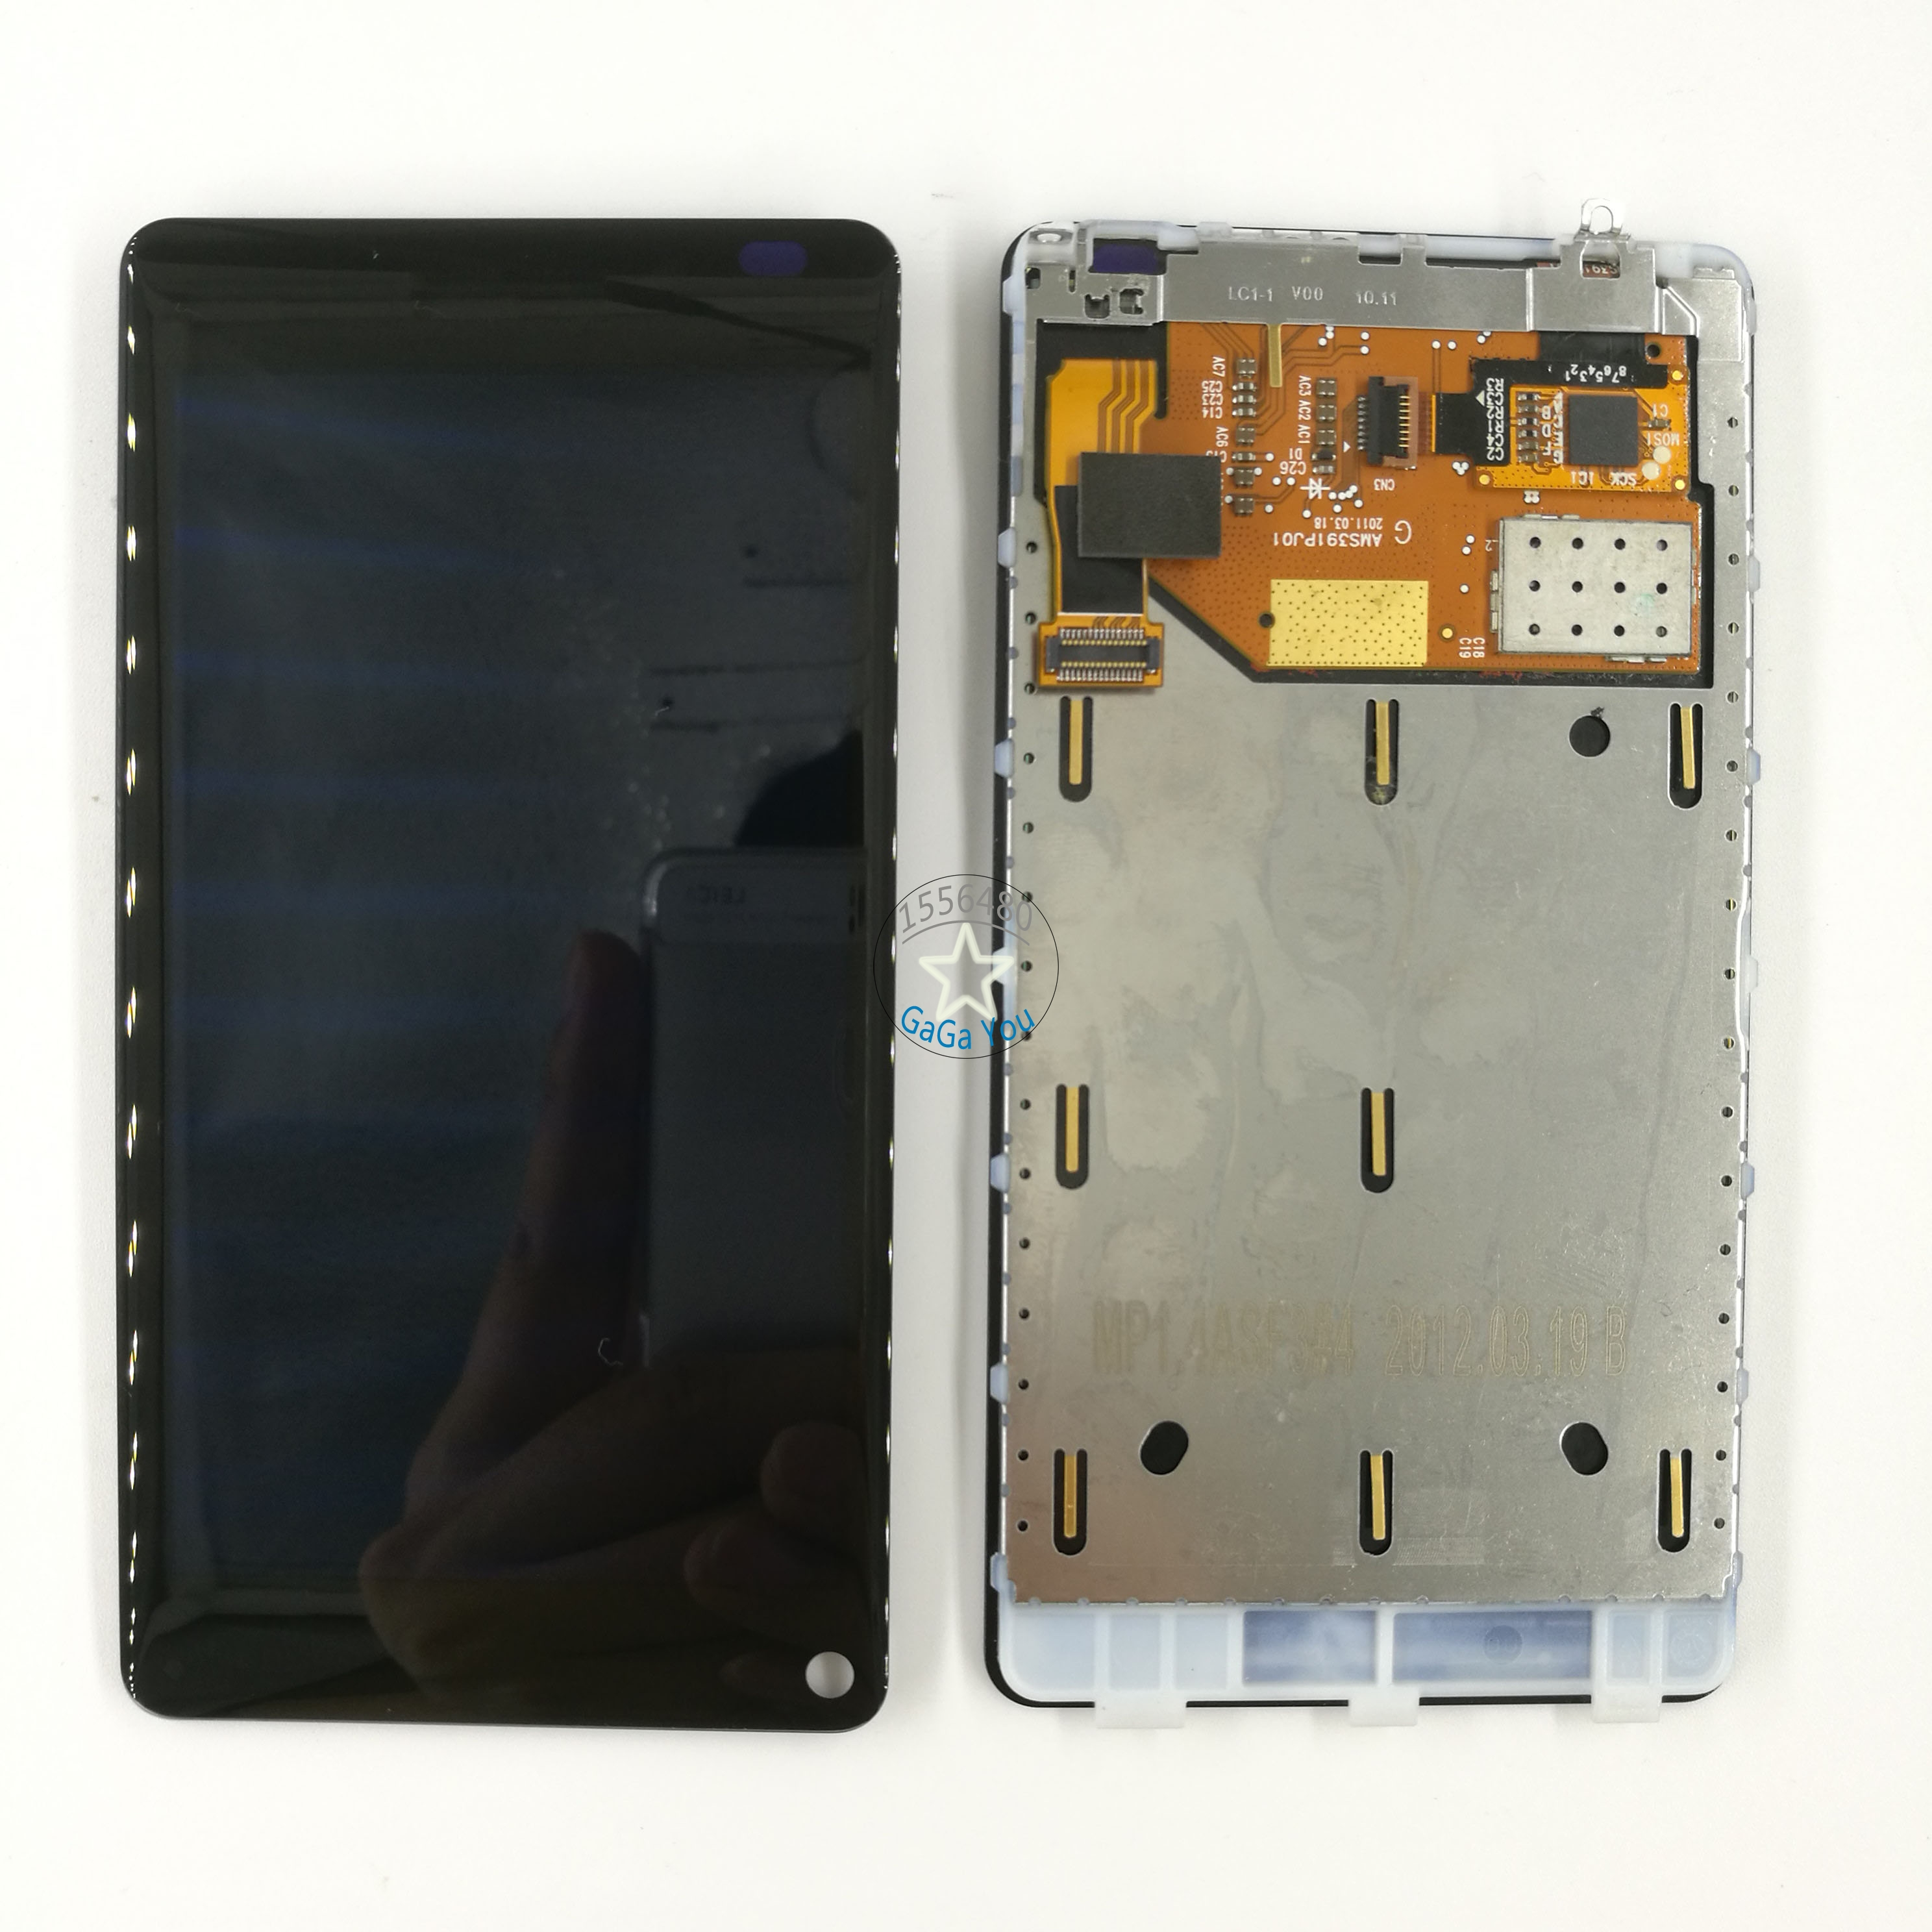 Original LCD Display Touch Screen Digitizer Assembly + Frame Bezel For Nokia Lumia 800 LCD Screen Panel Replacement Parts головка торцевая ударная